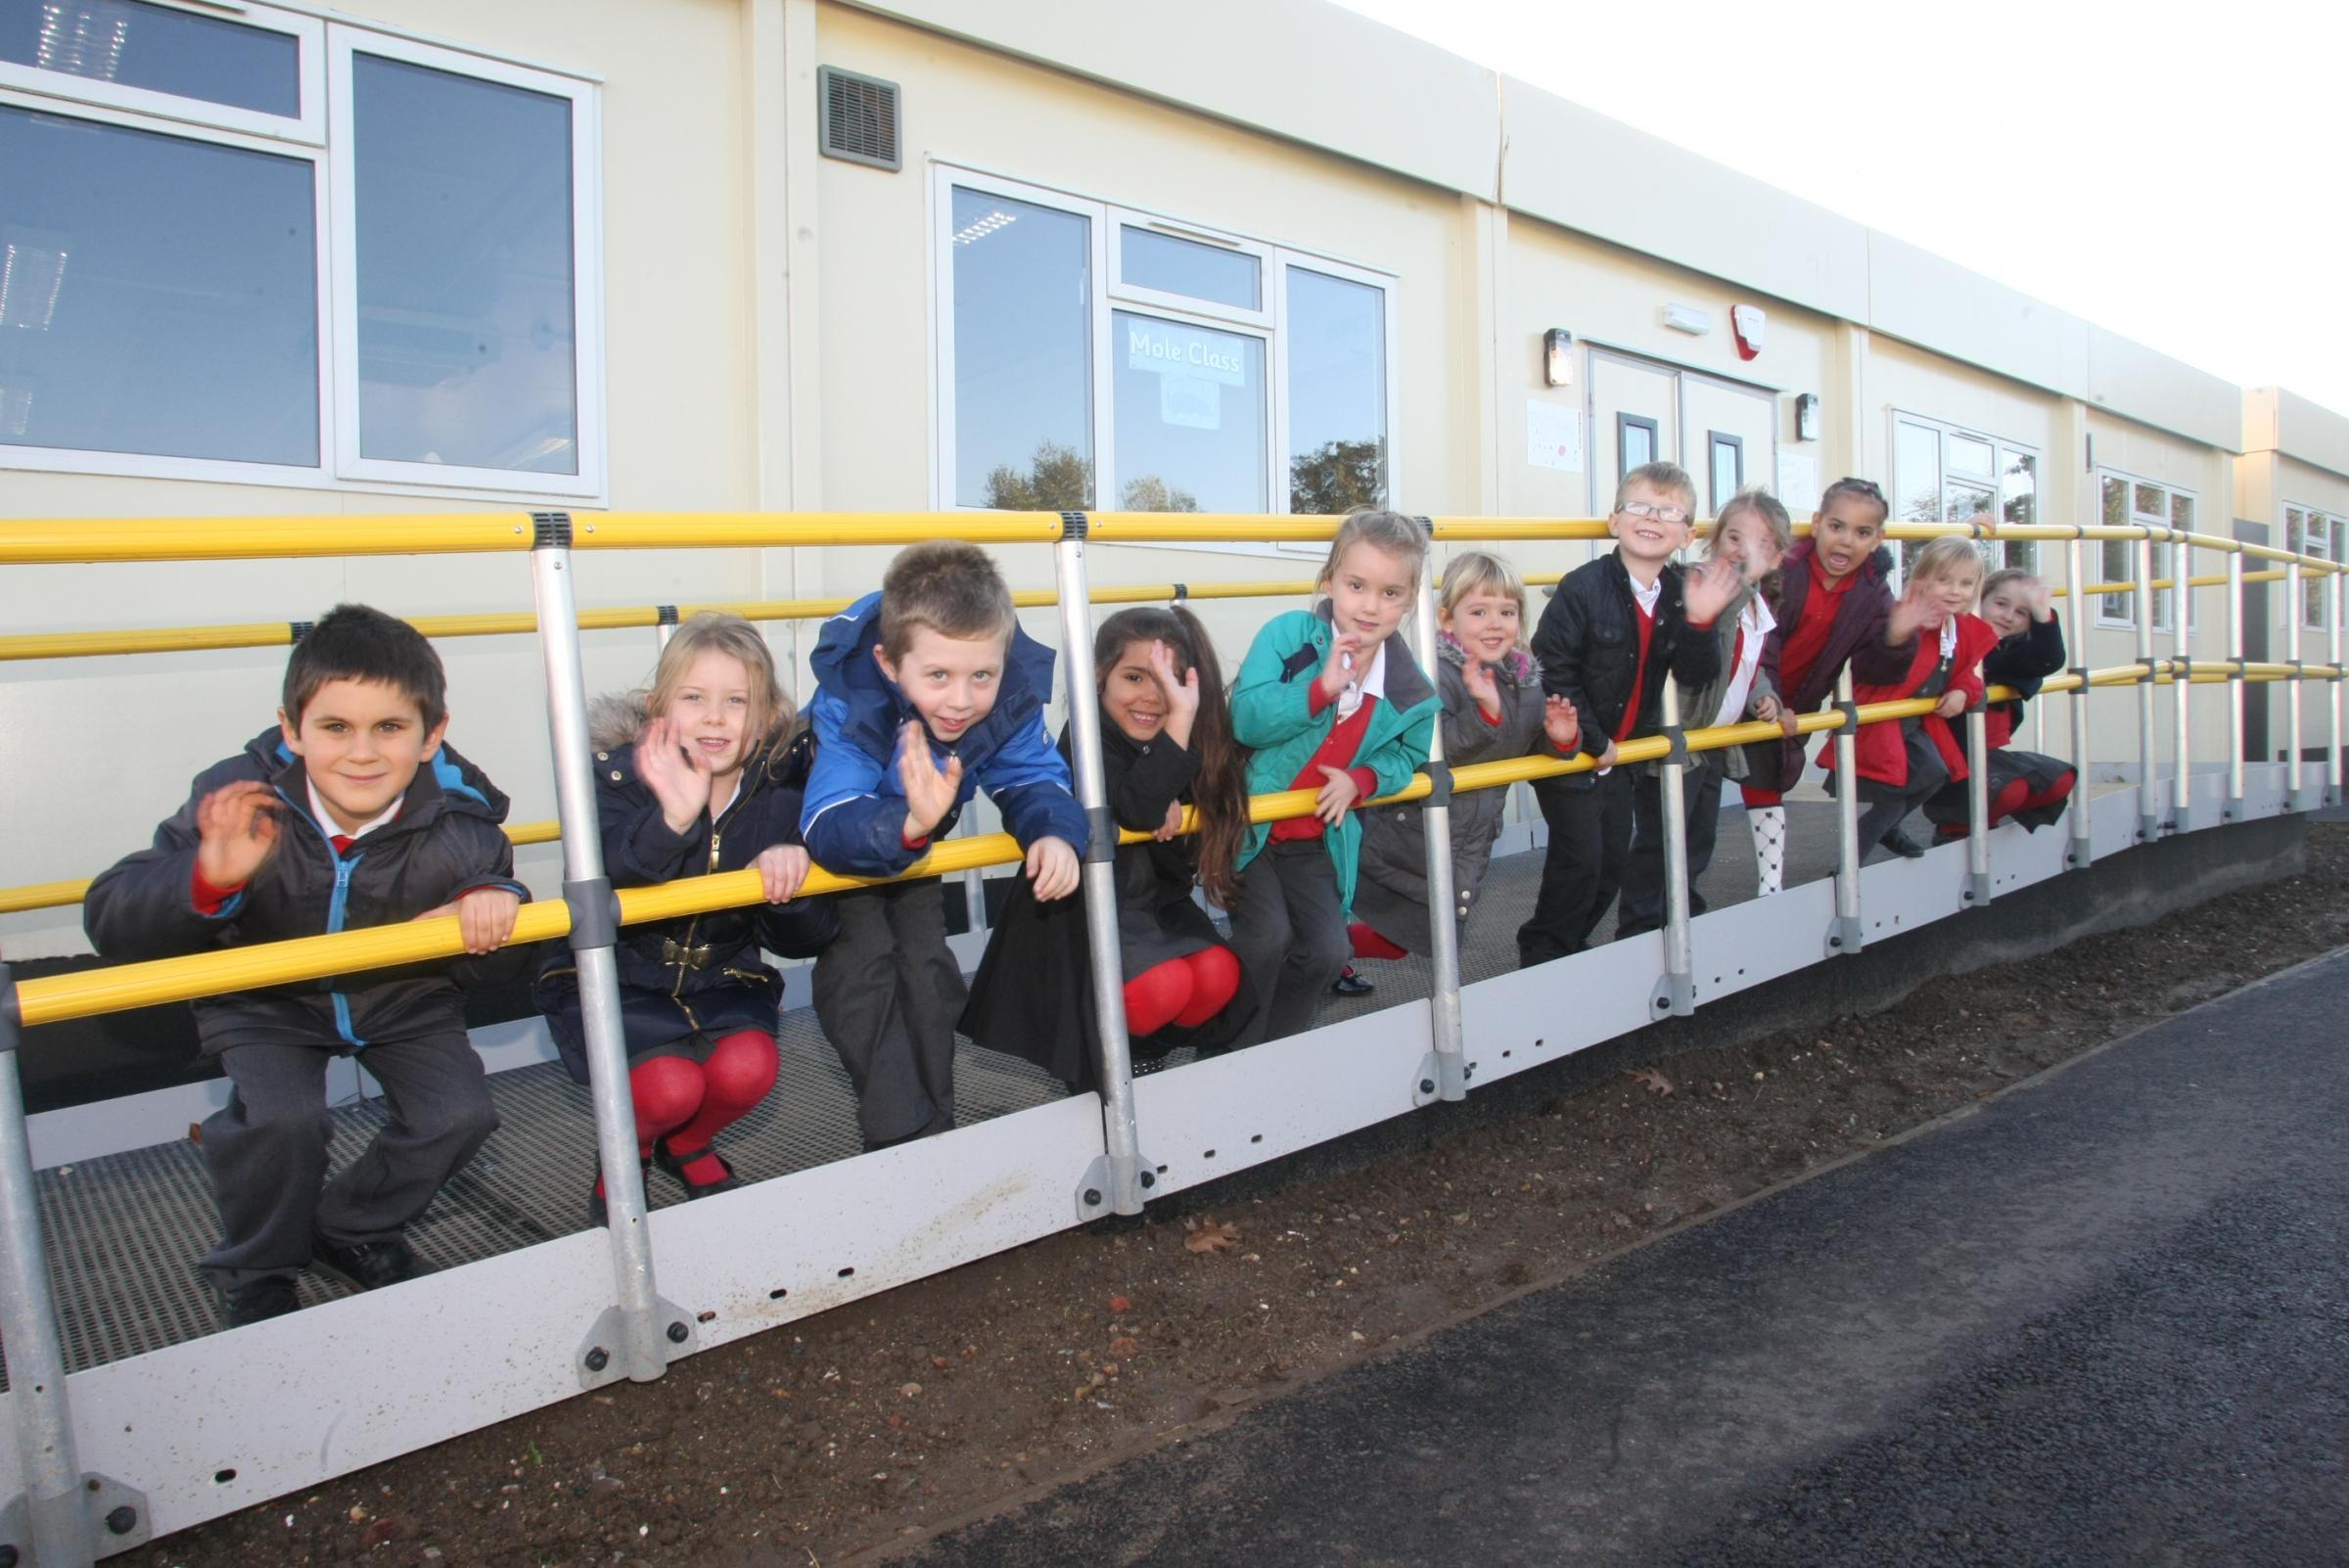 Pupils outside one of the demountable classrooms the school is currently based in